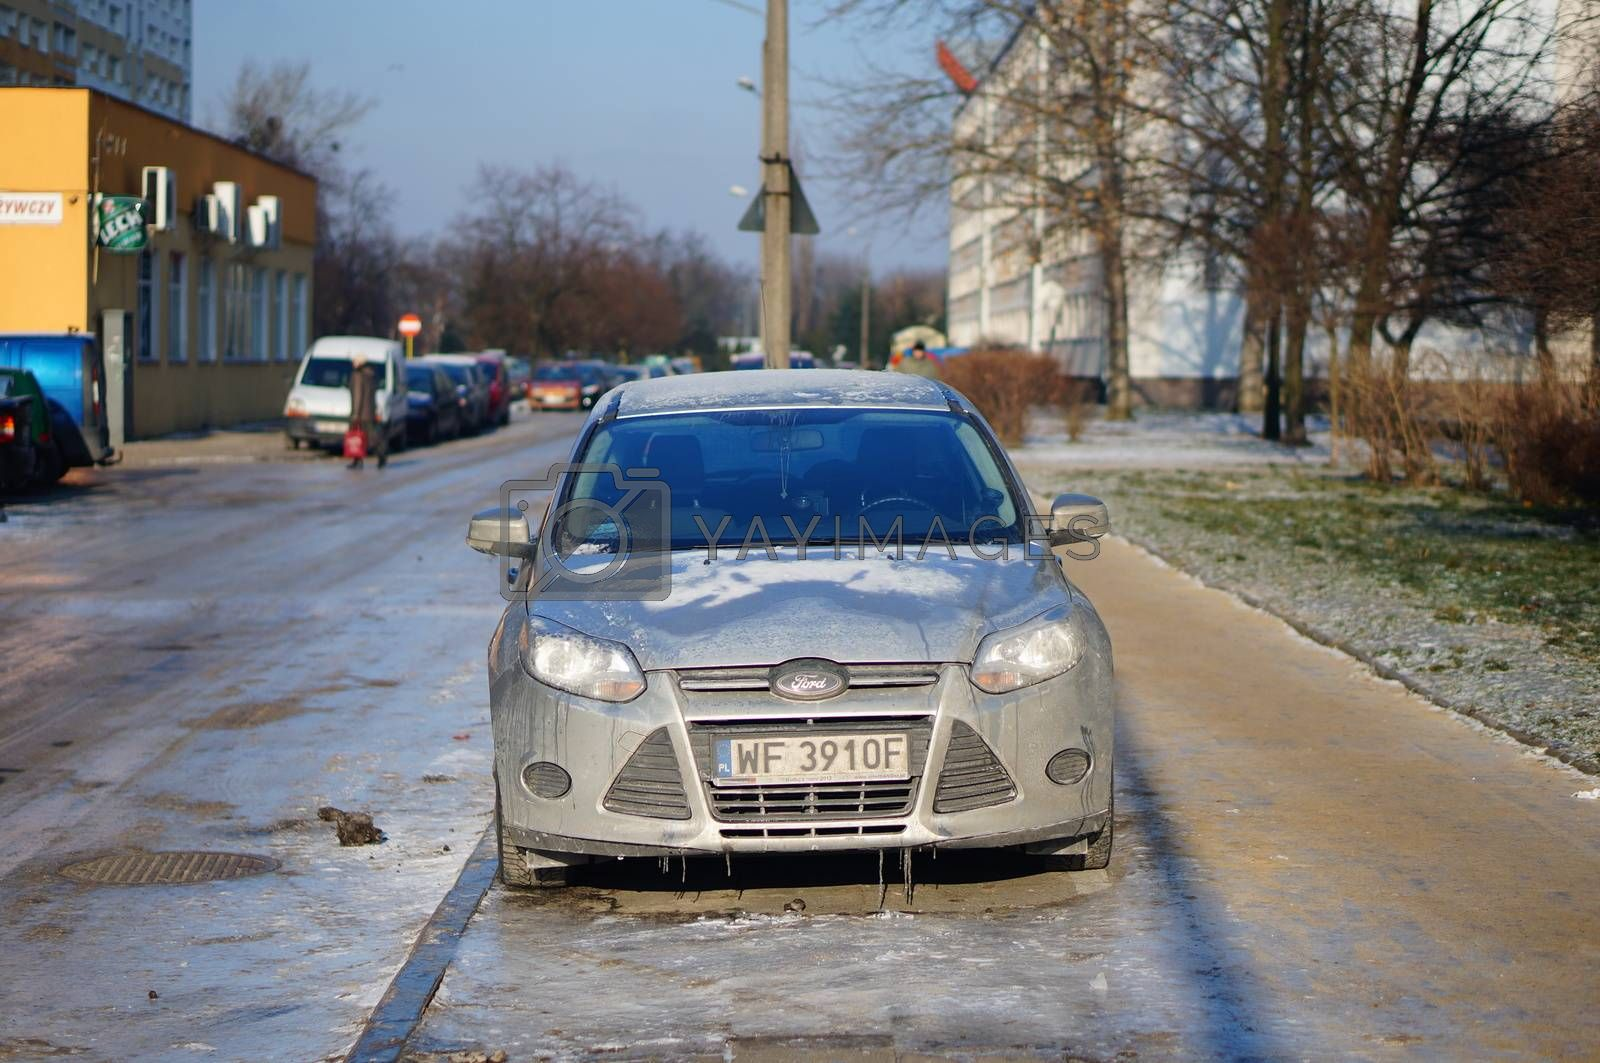 POZNAN, POLAND - JANUARY 25, 2014: Parked car covered with ice on a cold winter day